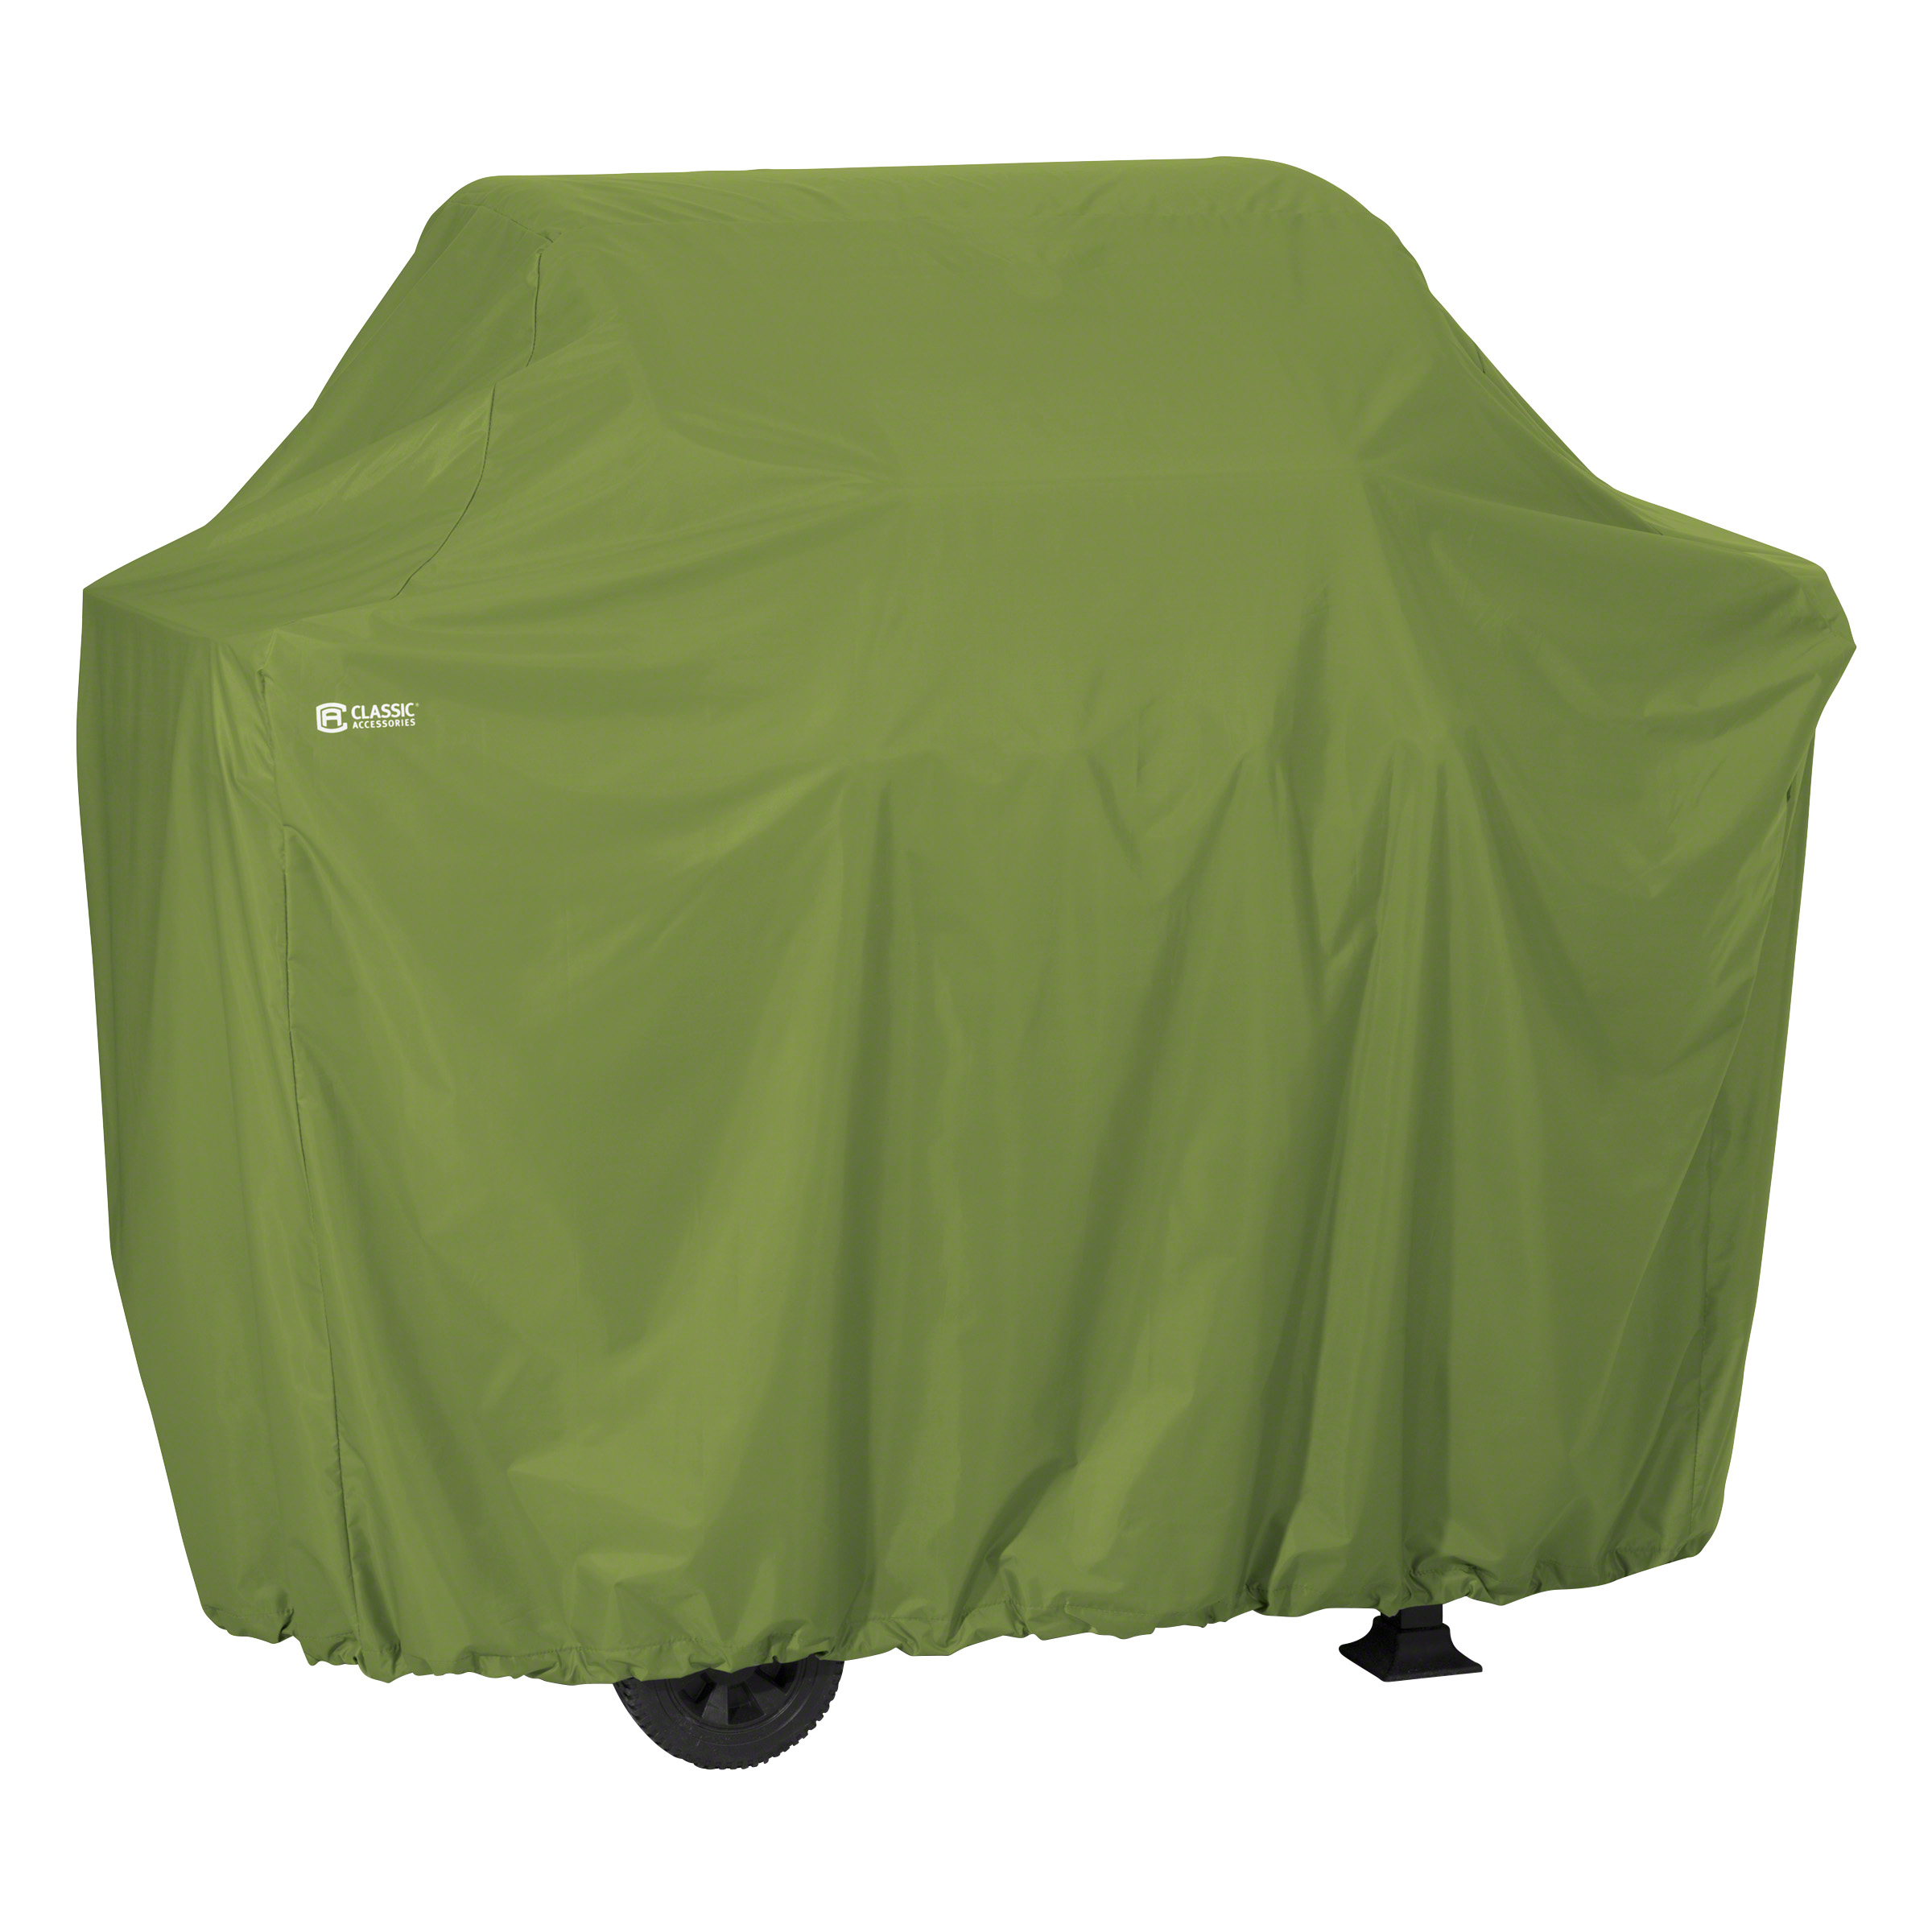 """Classic Accessories Sodo 22.5"""" x 60"""" BBQ Grill Cover in Herb PartNumber: 07145145000P"""